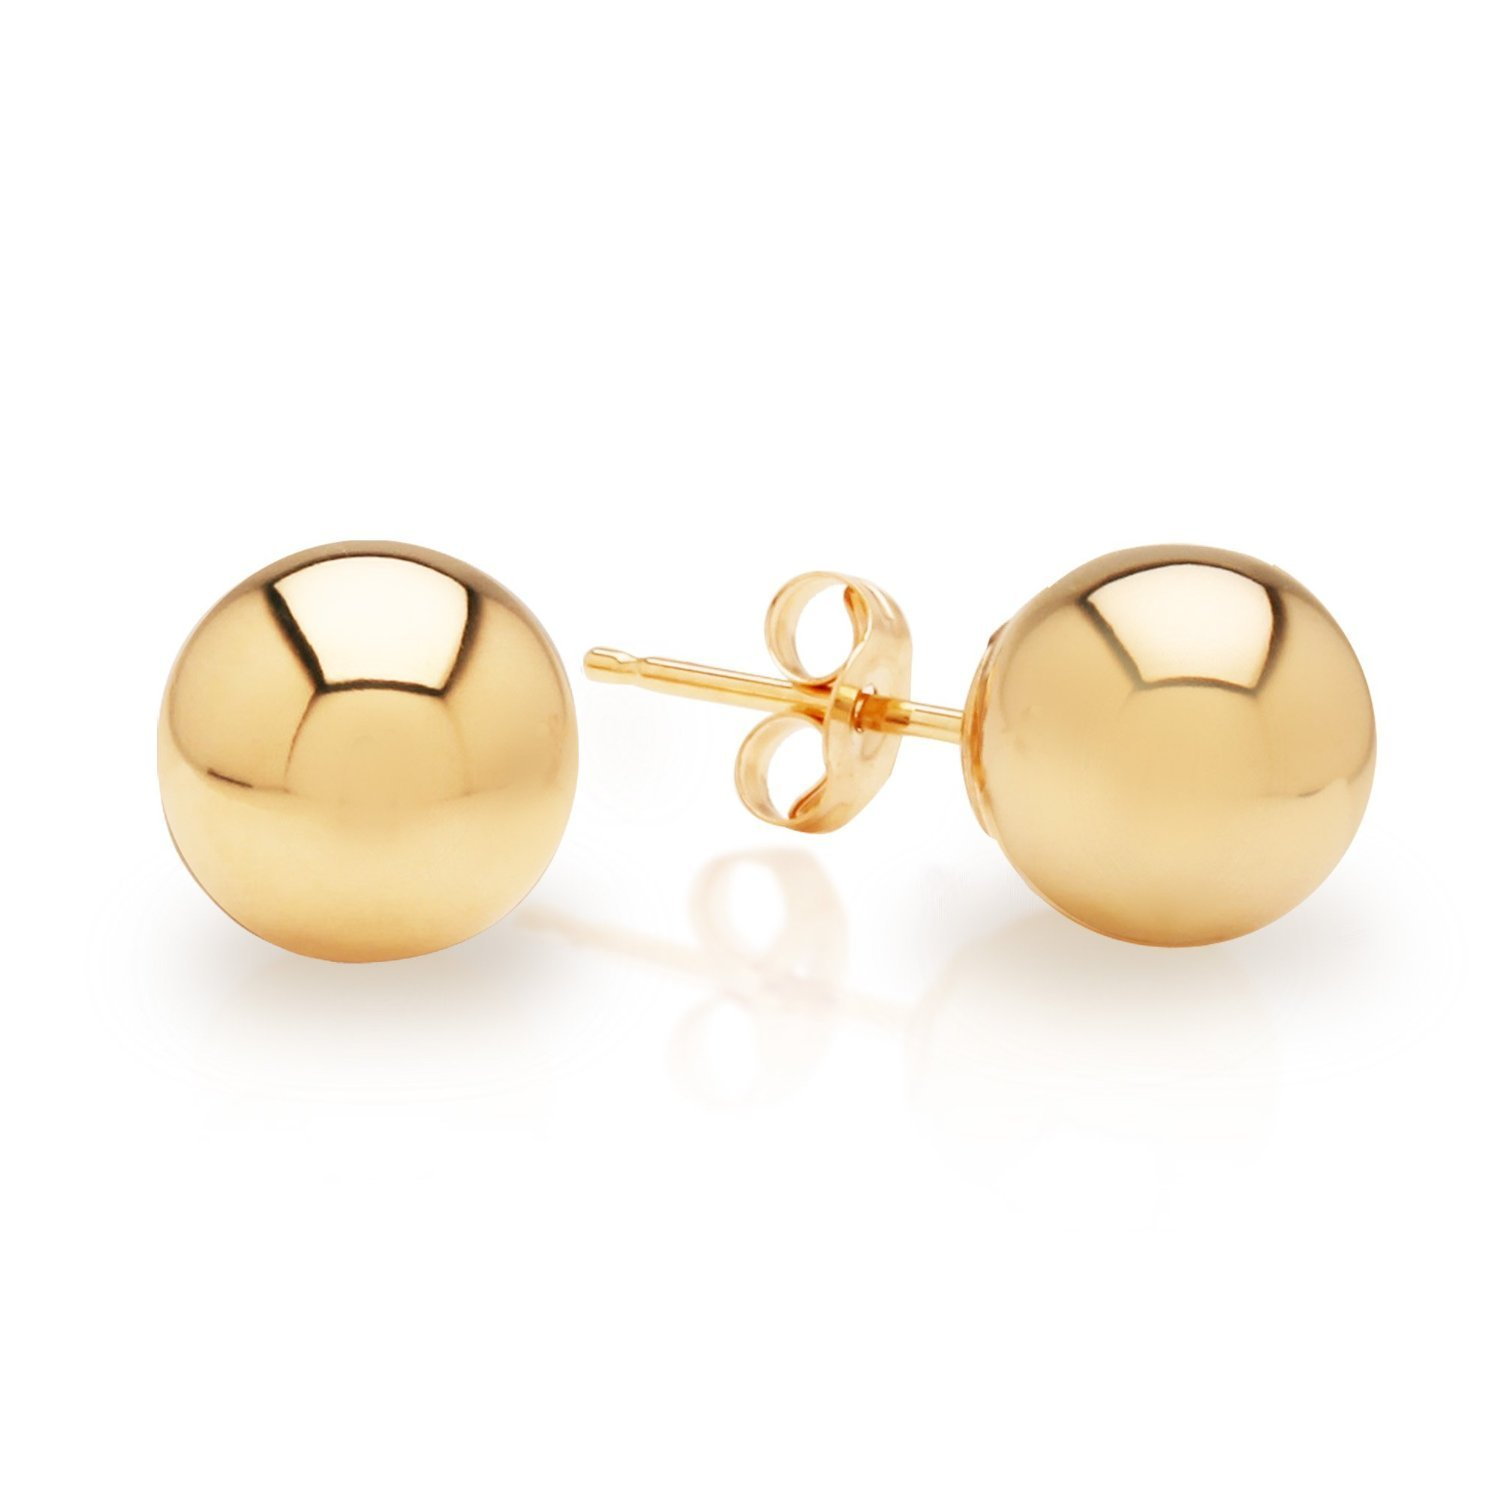 albert gold by designs knob earrings